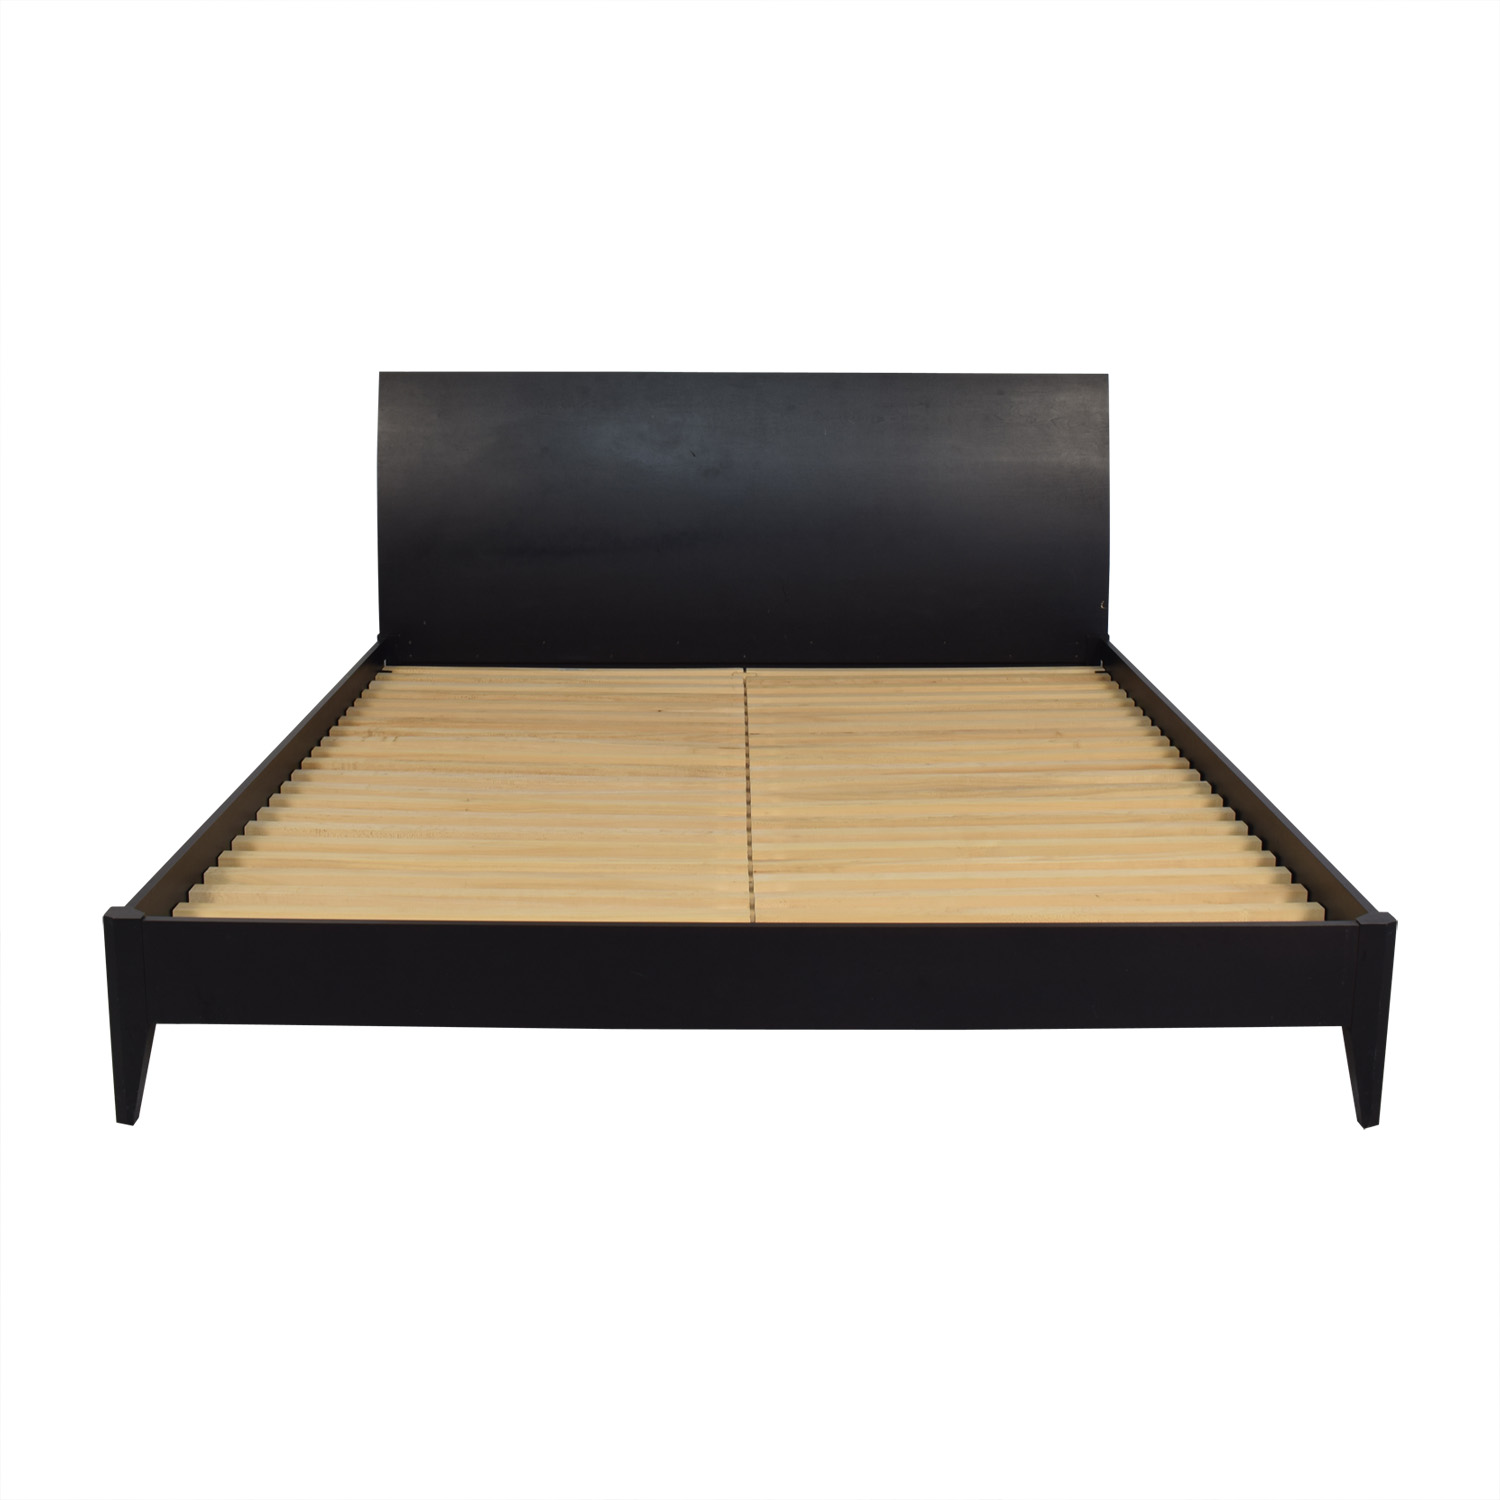 Baronet Baronet Wood King Bed Frame black